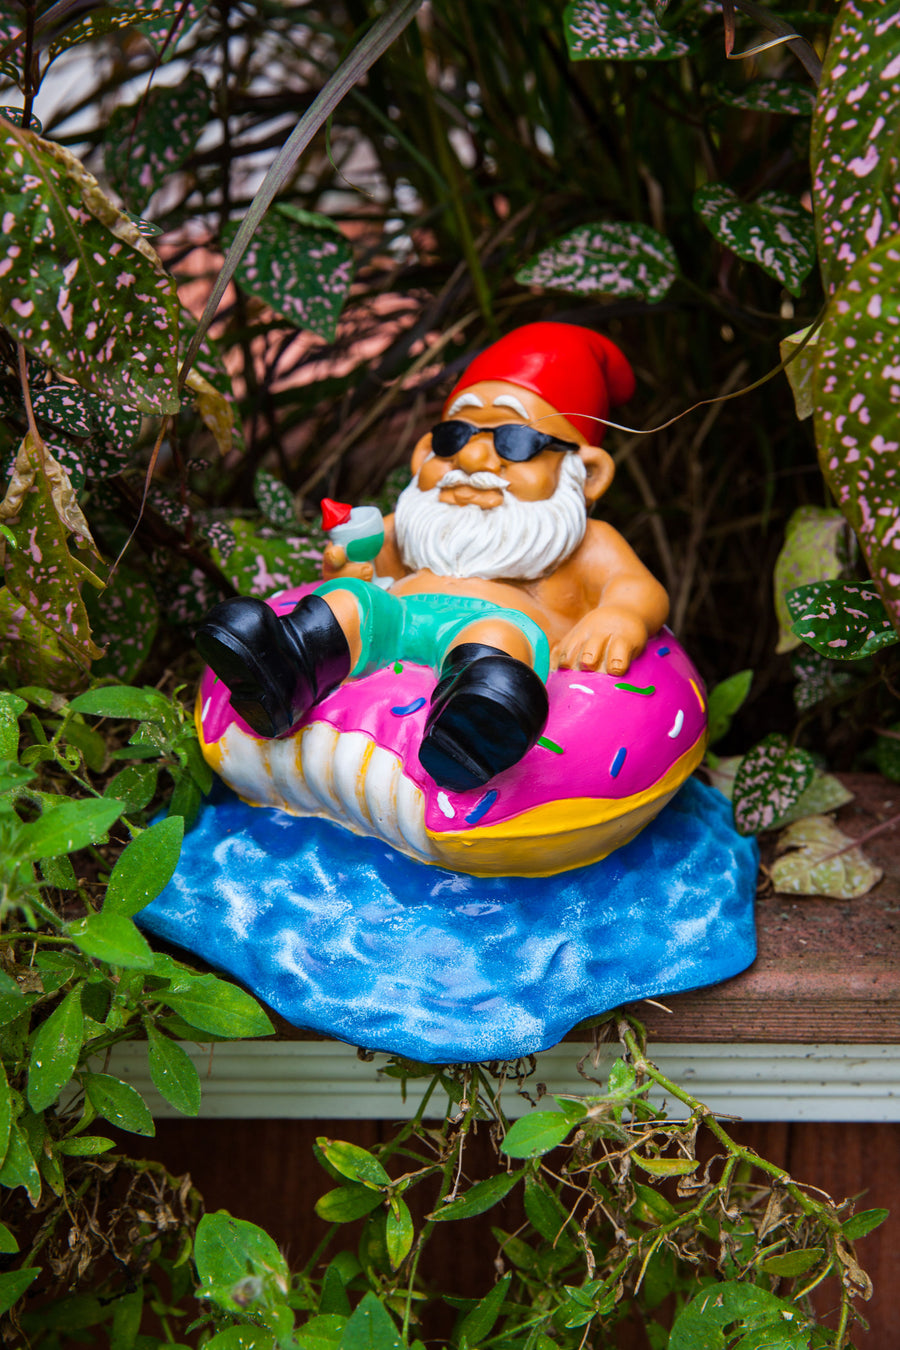 The Donut Worry Be Happy Garden Gnome